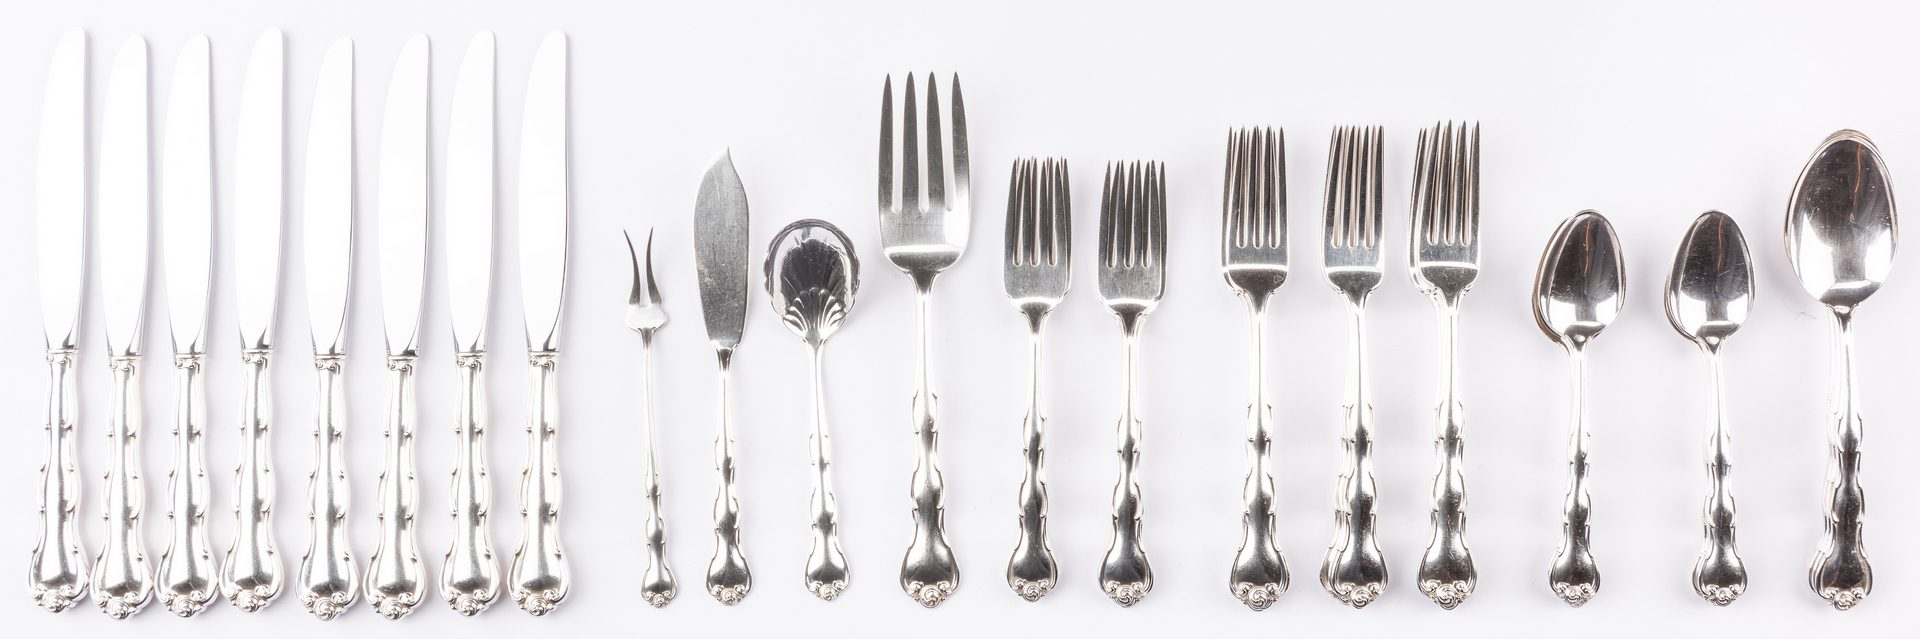 Lot 695: Gorham Rondo Pattern Sterling Flatware, 40 pcs